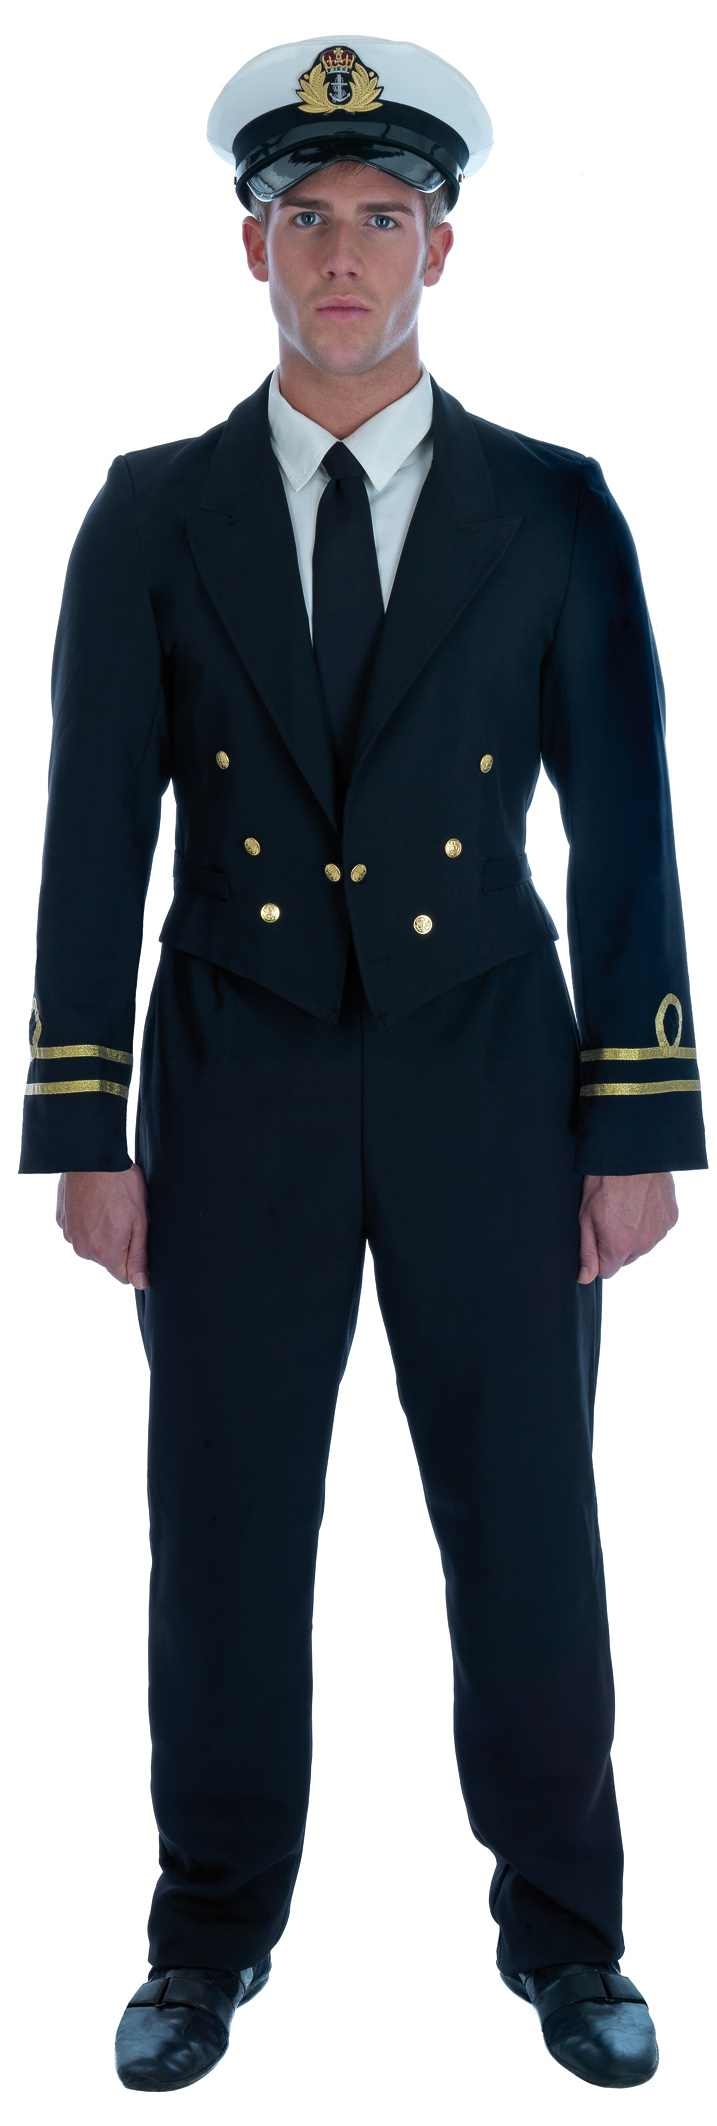 Mens-WW2-Naval-Officer-Costume-for-Navy-Sailor-Fancy-Dress-Up-Outfits